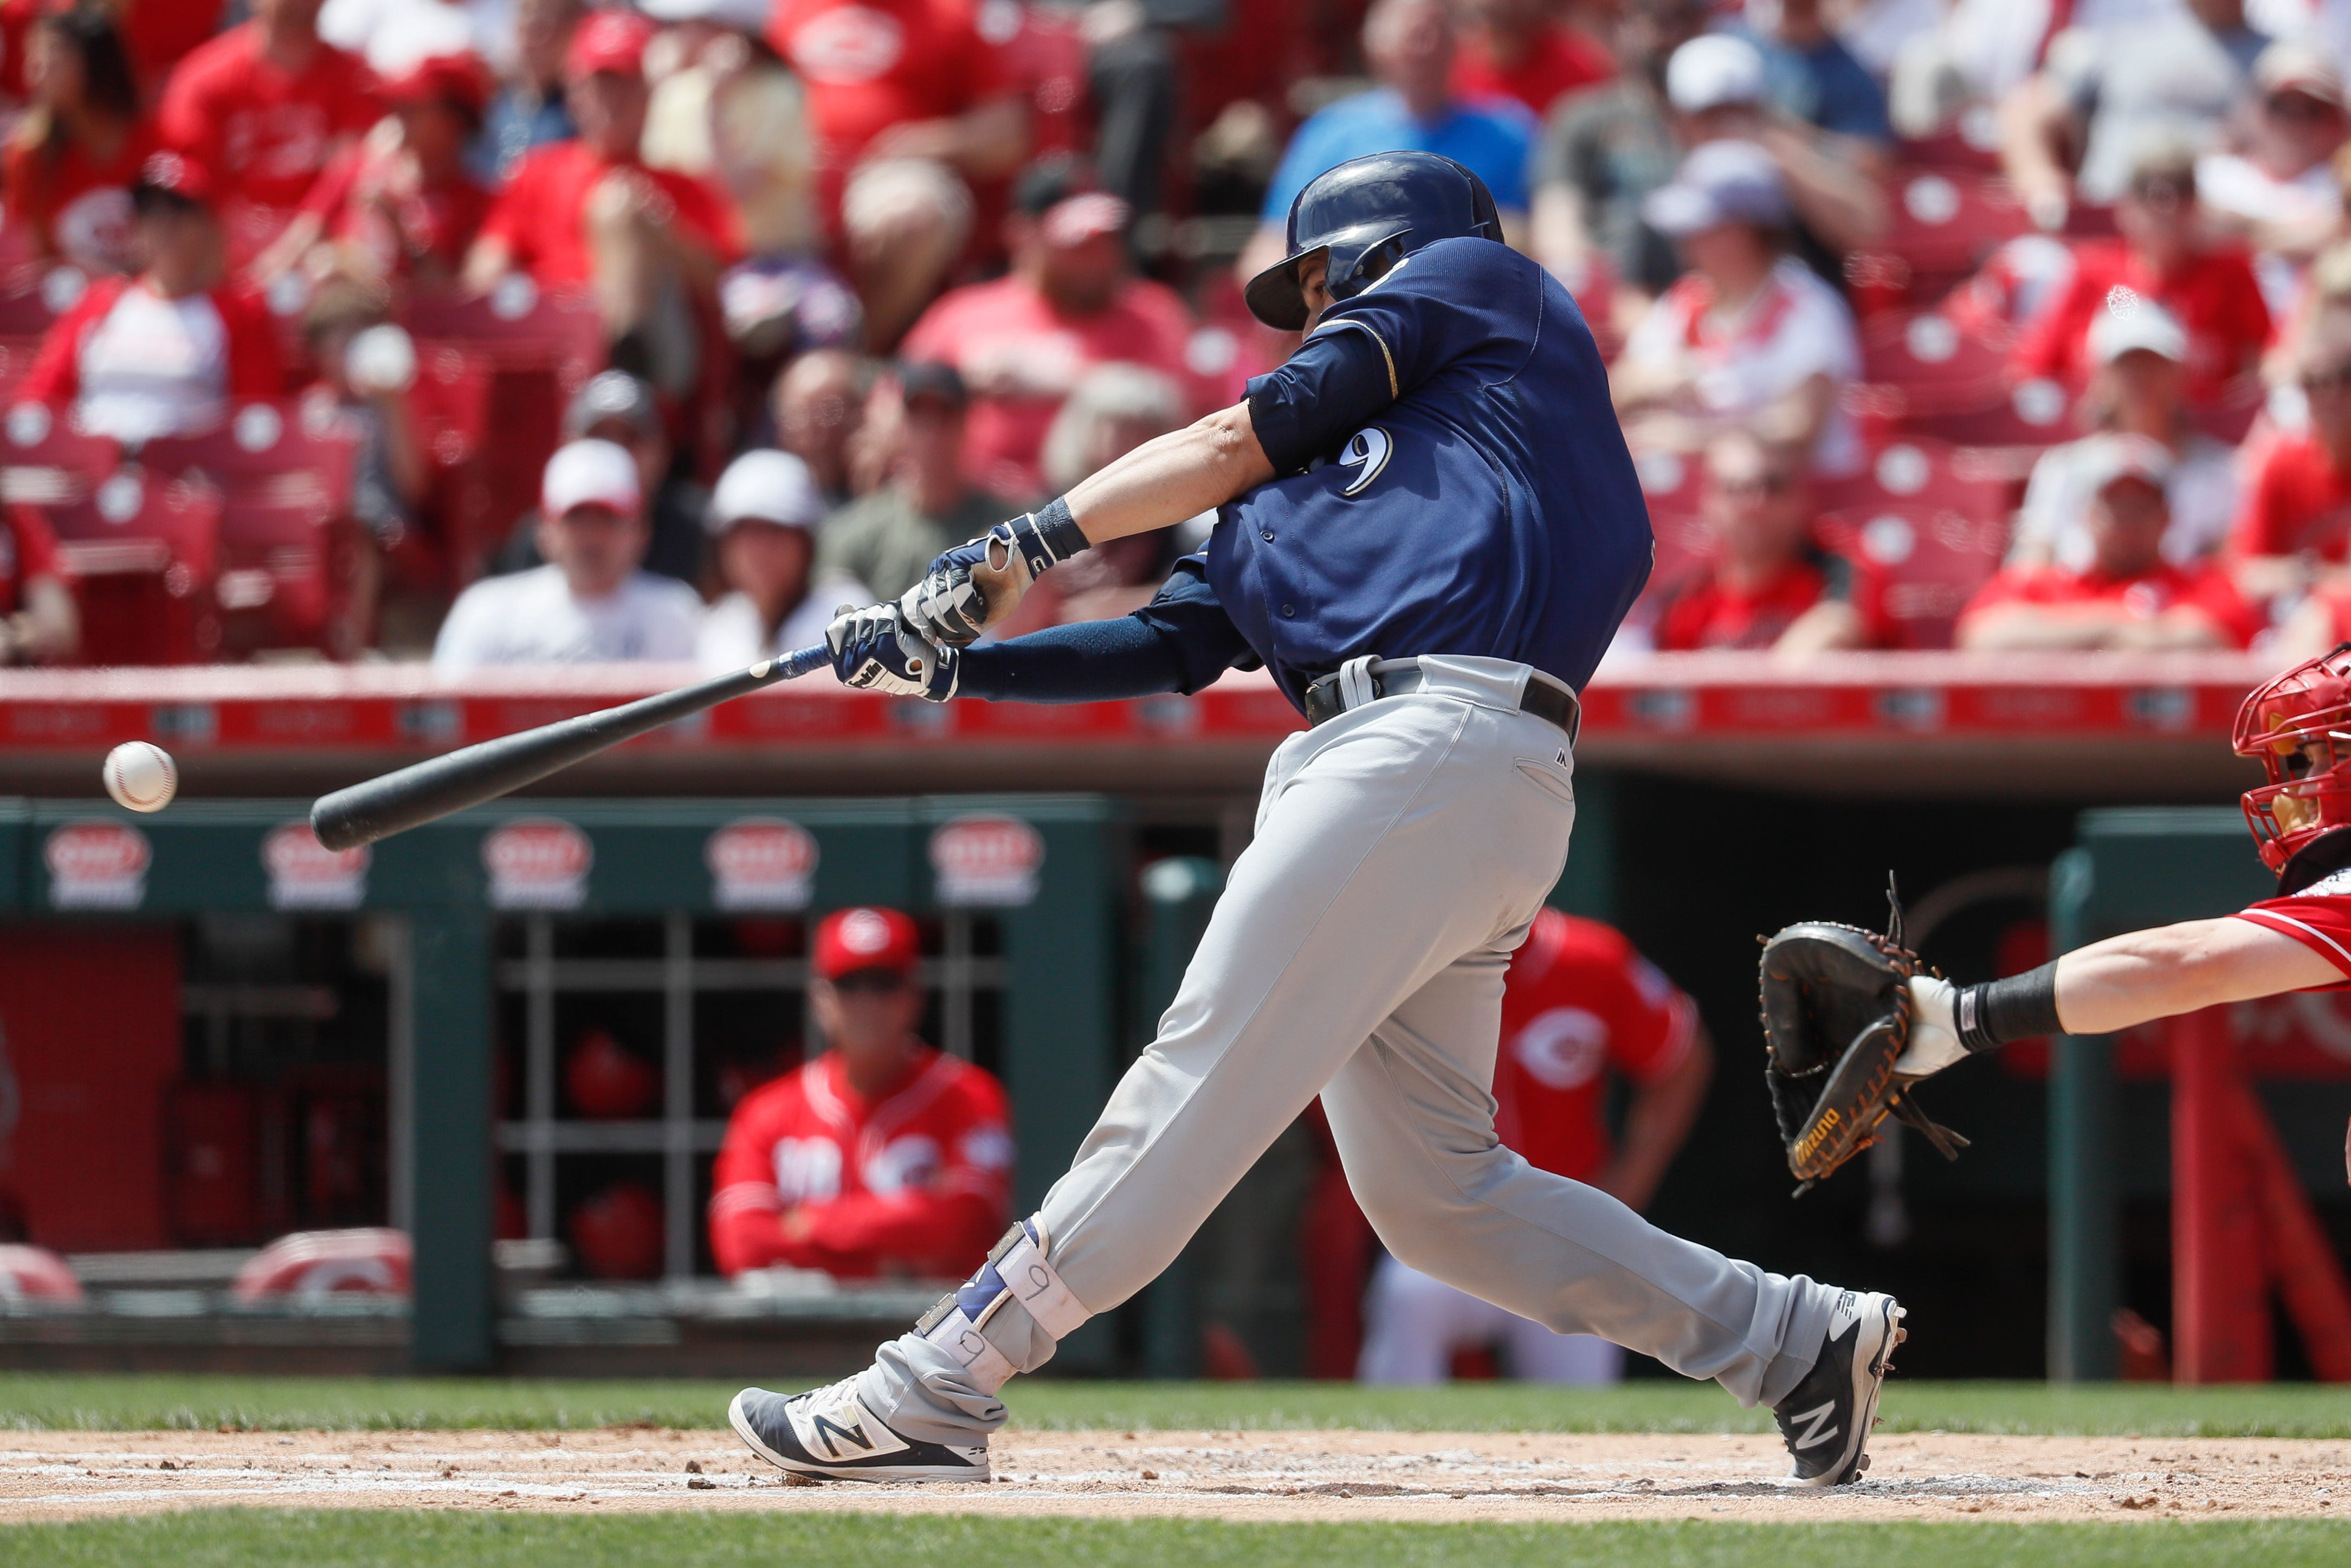 Notes: Brewers hit on successful formula at catcher